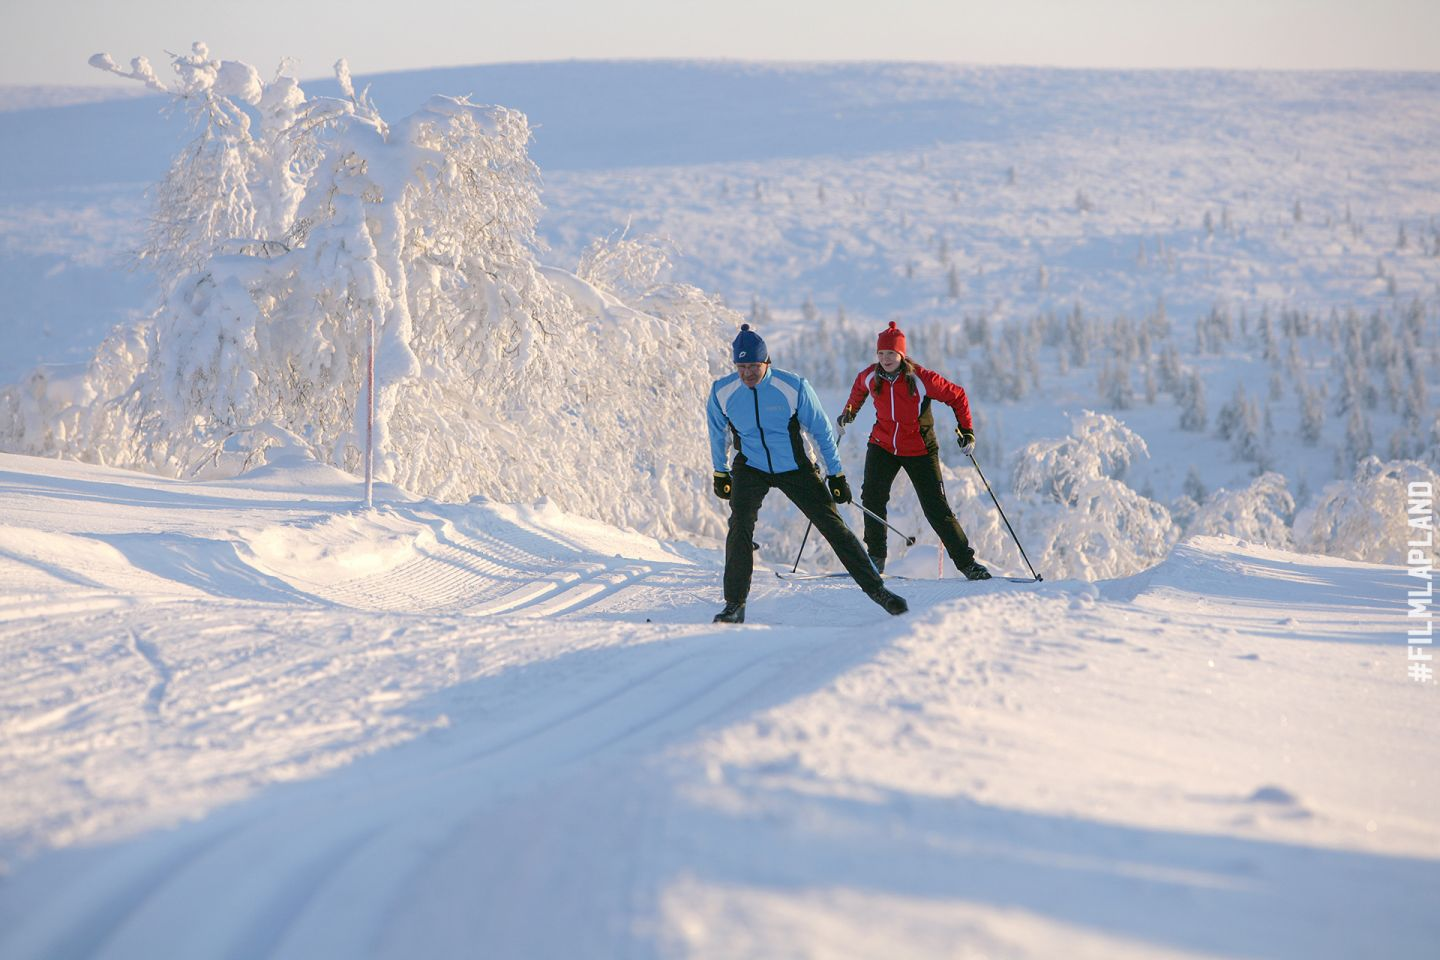 Skiing on a hill in Inari, Lapland